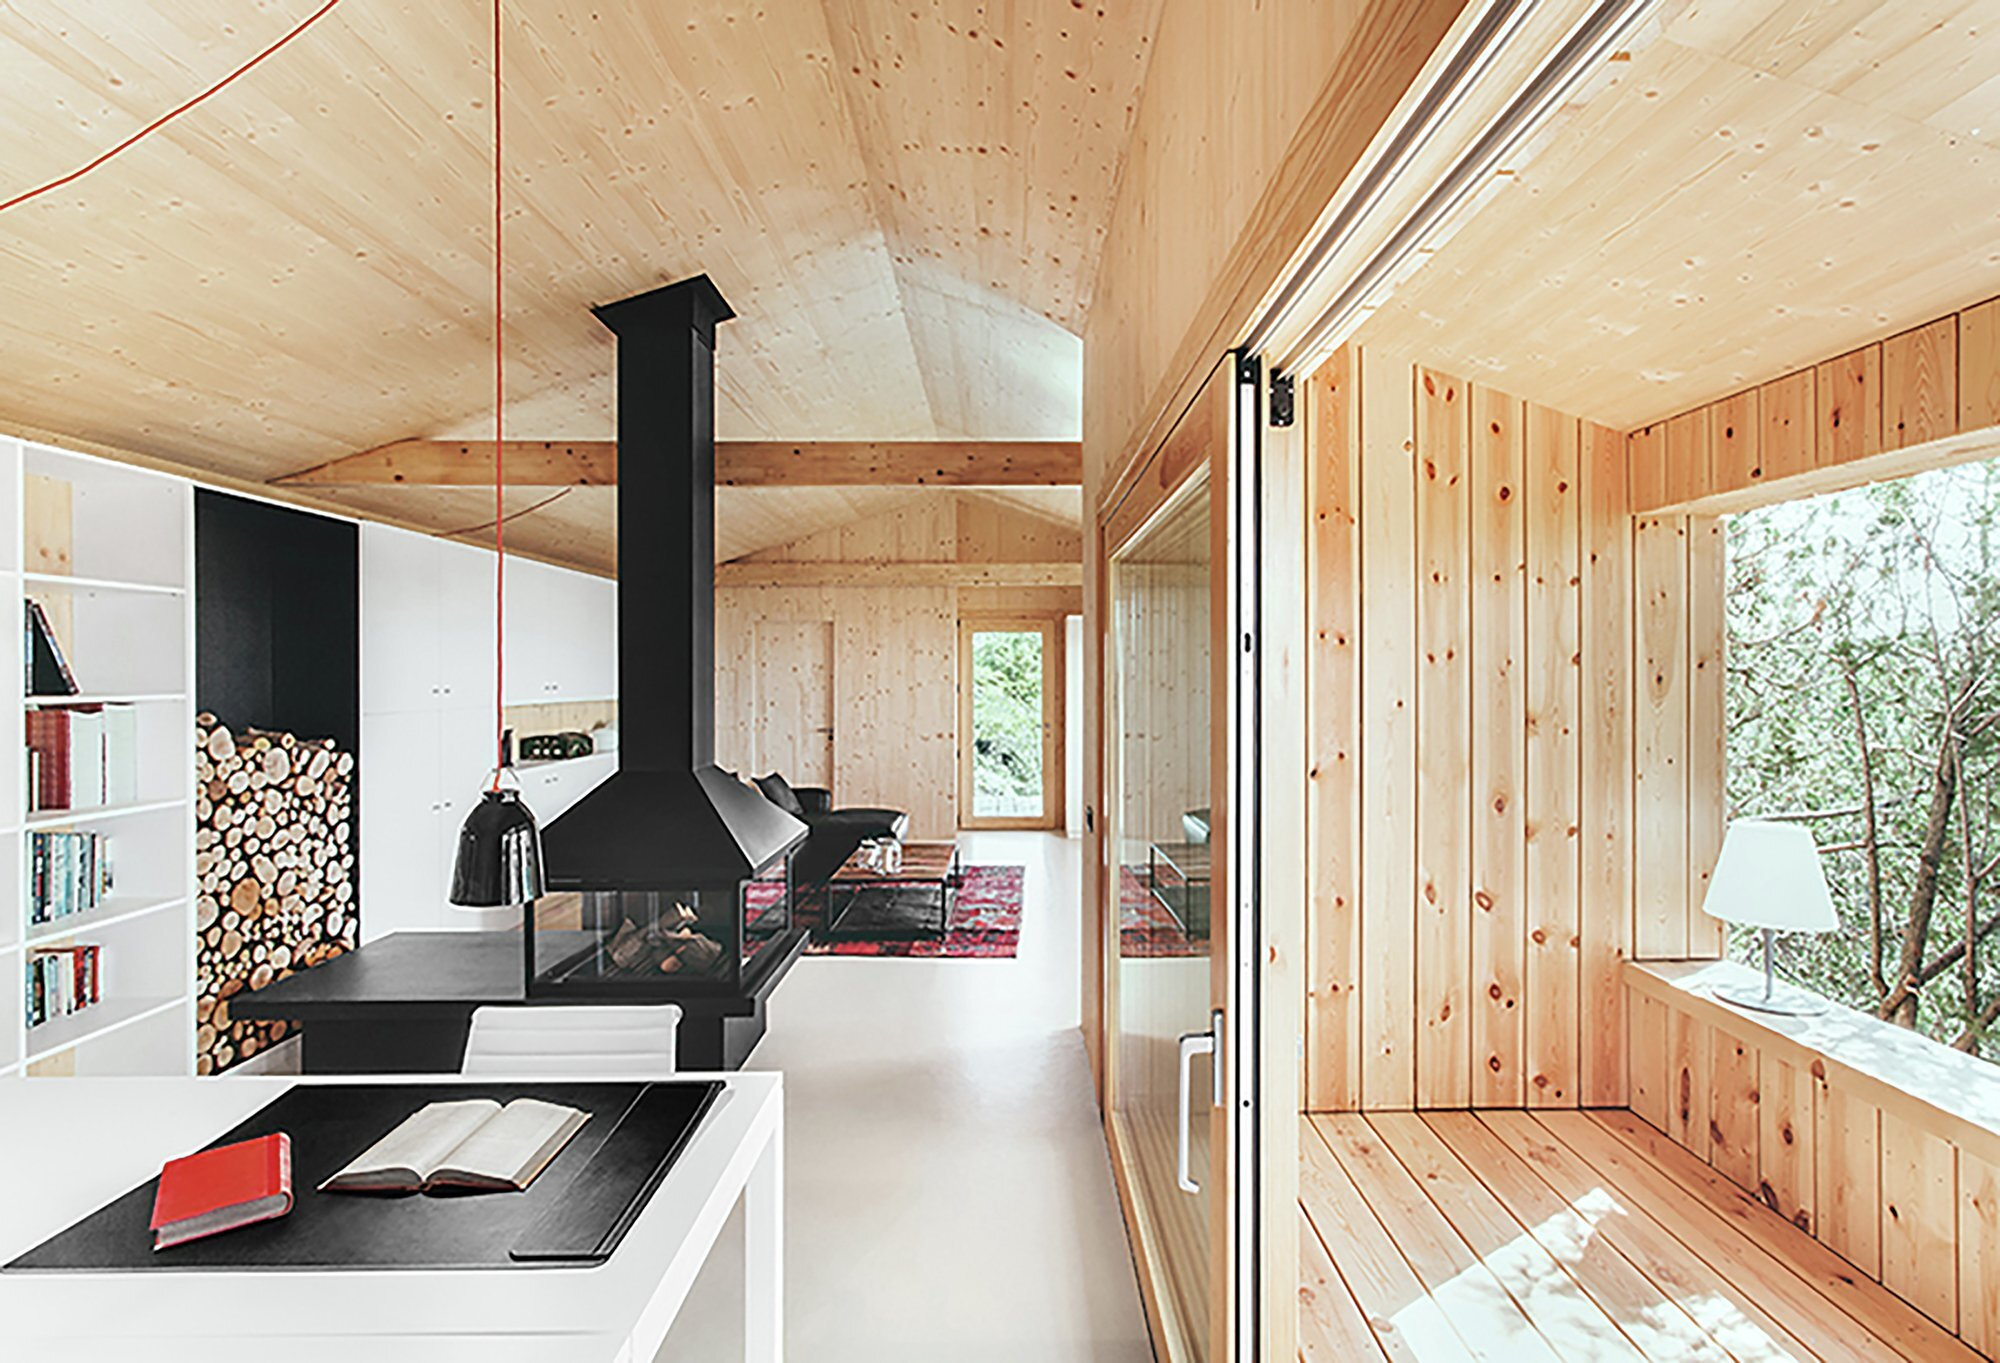 Wood Studio House - Dom Arquitectura - Barcelona - Sheltered Porch Living  Area - Humble Homes